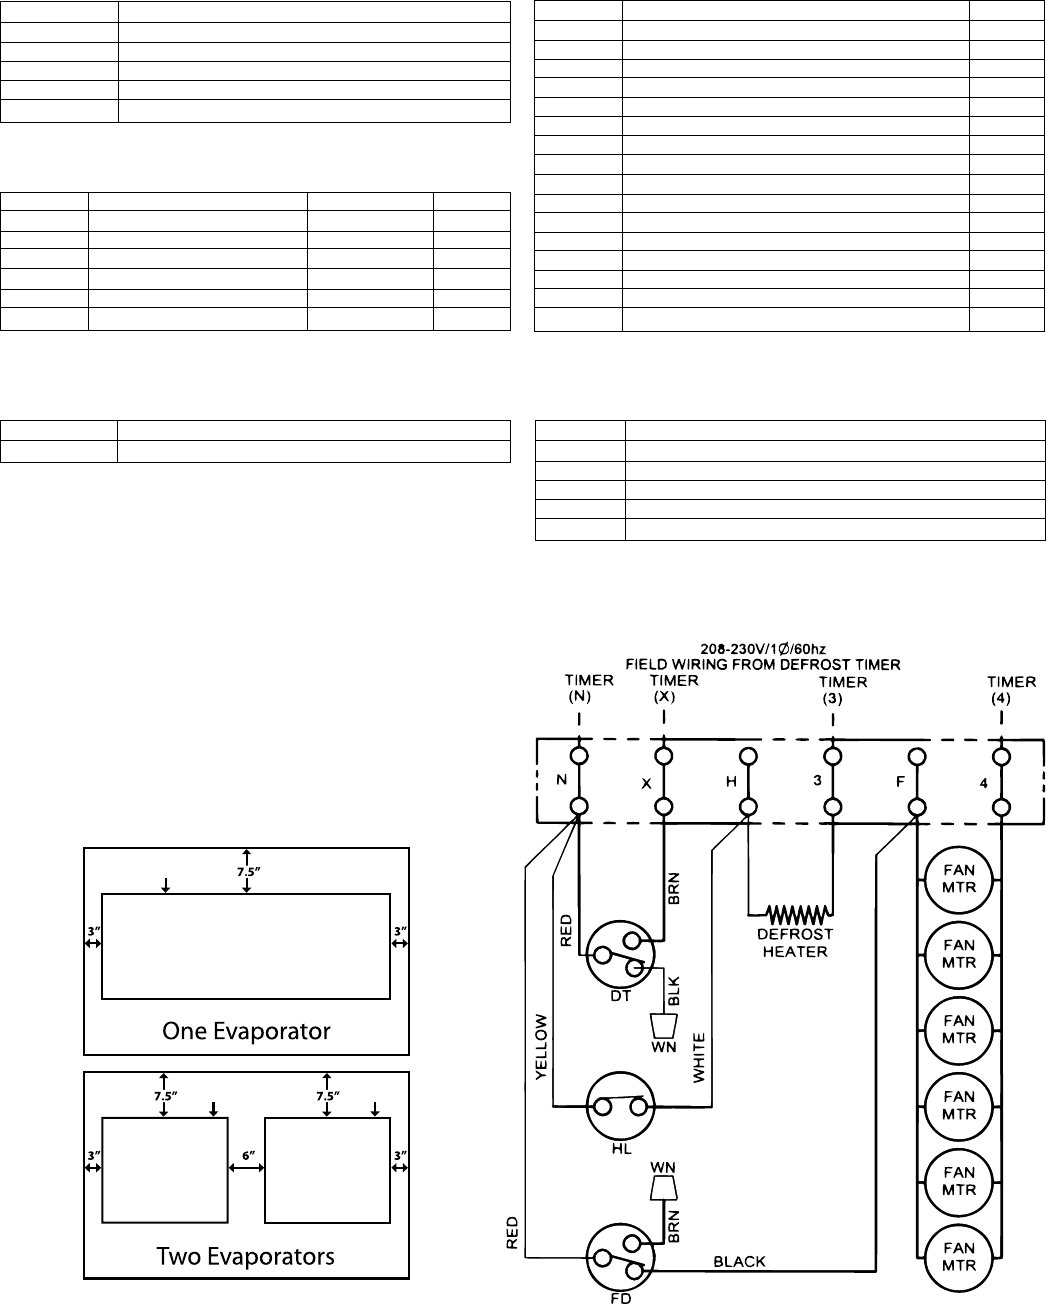 2f271777 ed48 431c affa 693c84f3fb6b bgb page 11 of heatcraft refrigeration products humidifier 25005601 heatcraft wiring diagram at reclaimingppi.co